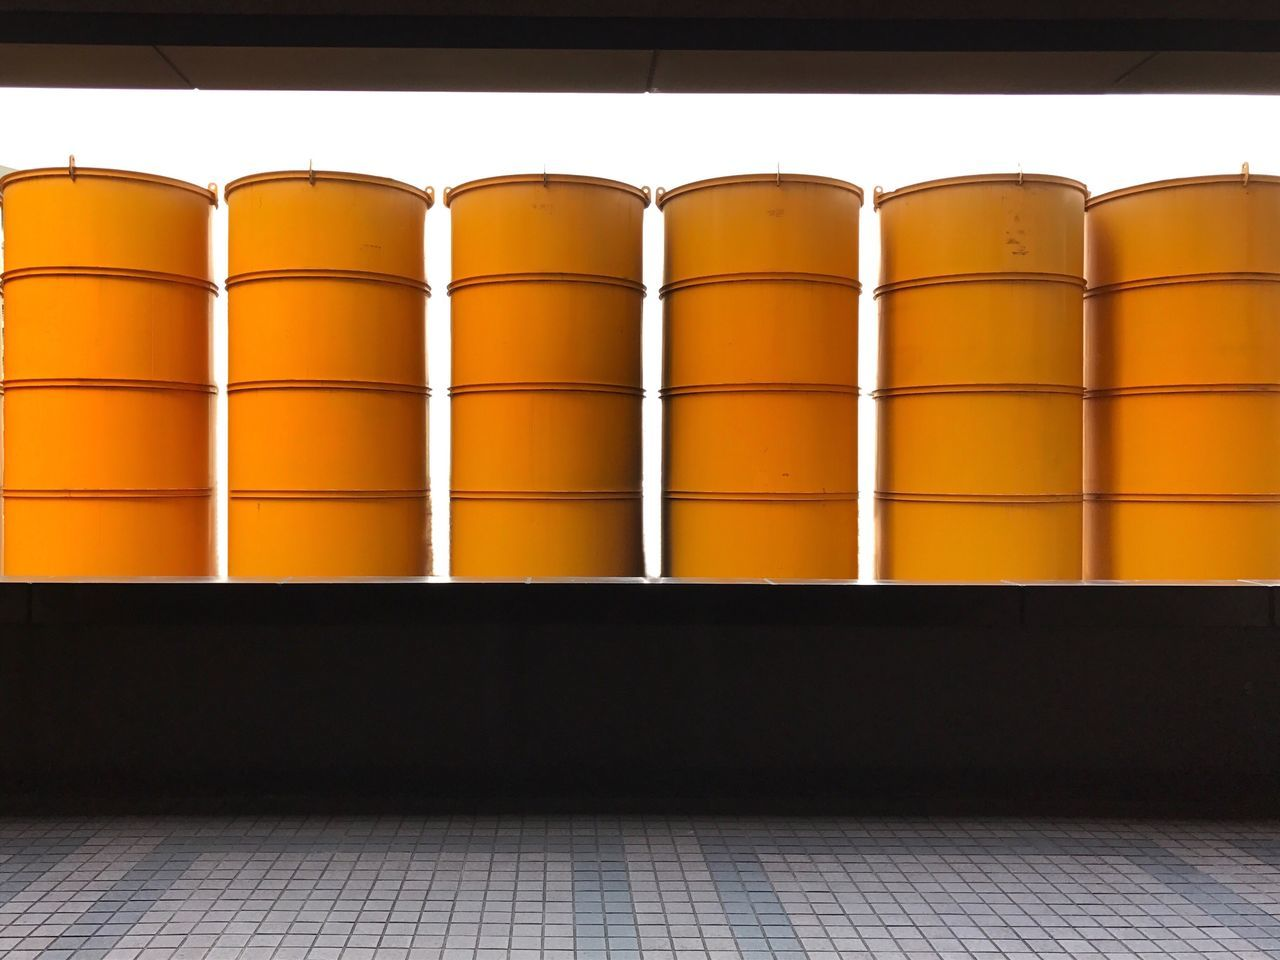 Silos Yellow Construction Site Architecture No People Urban Geometry Urban Exploration What Who Where Yellow Silos In A Row, Side By Side, Chance Encounters Fresh on Market 2016 The Architect - 2017 EyeEm Awards